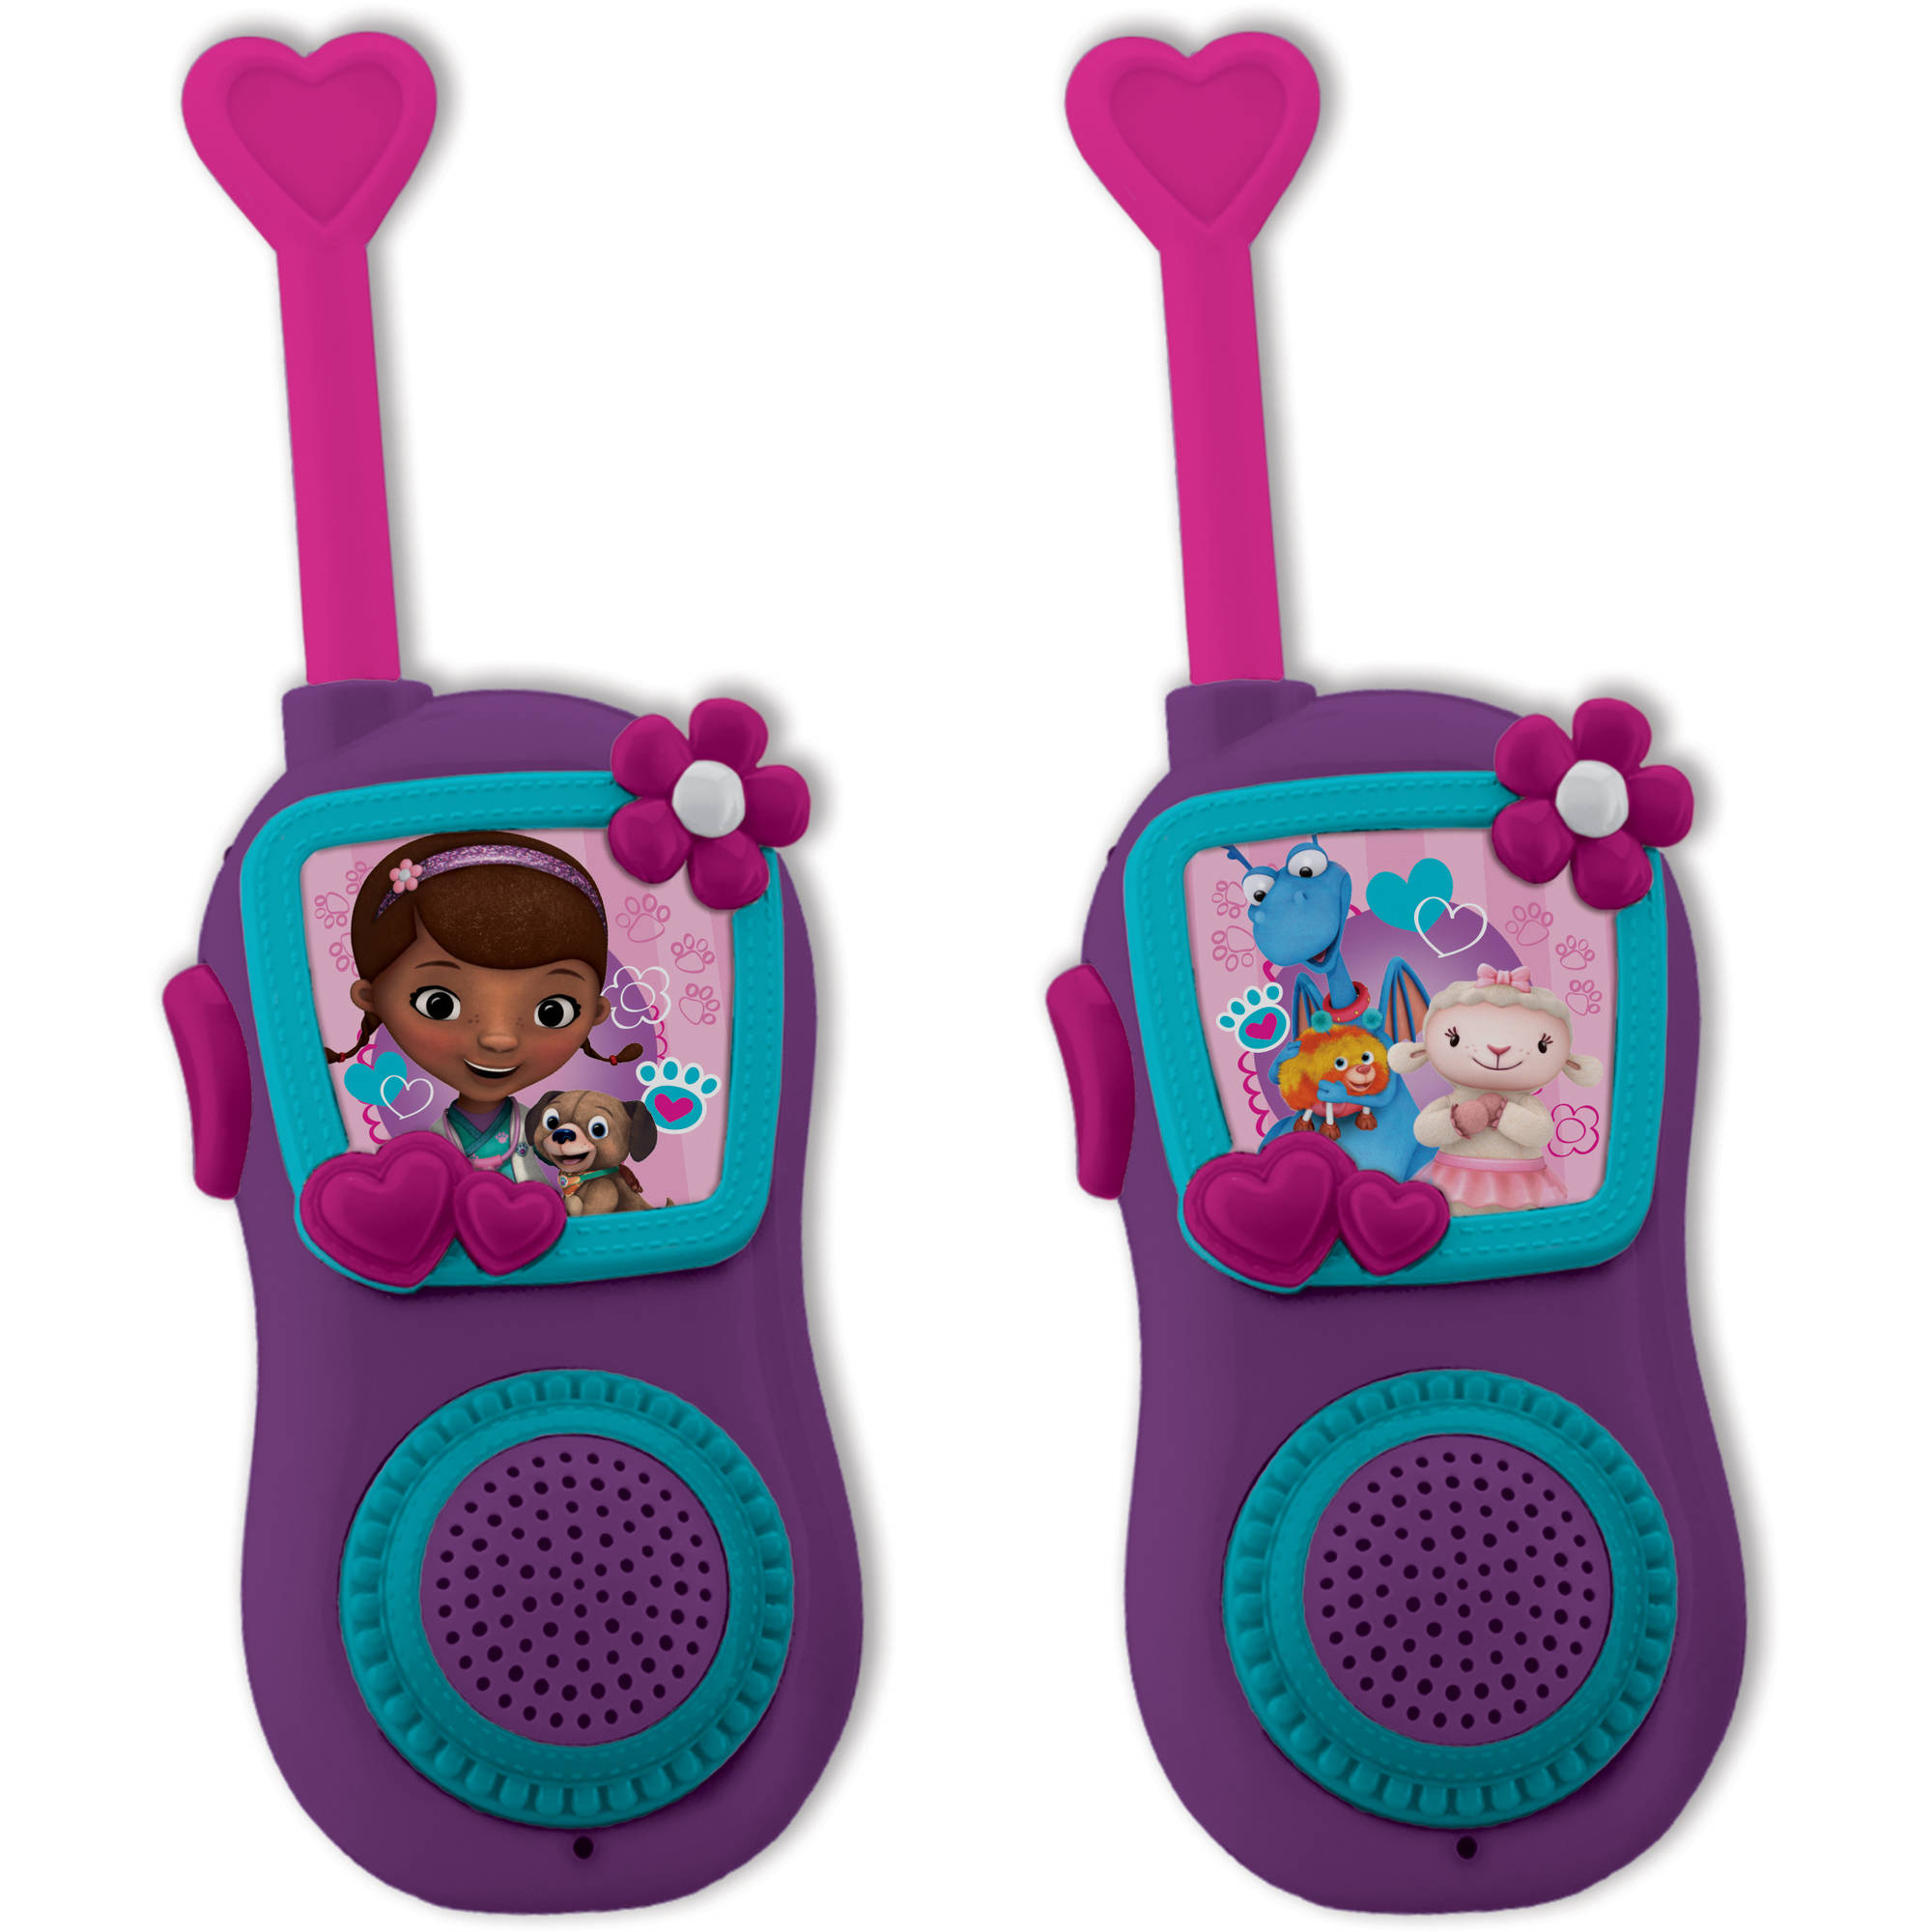 Disney Doc McStuffins FRS 2-Way Radios by Generic